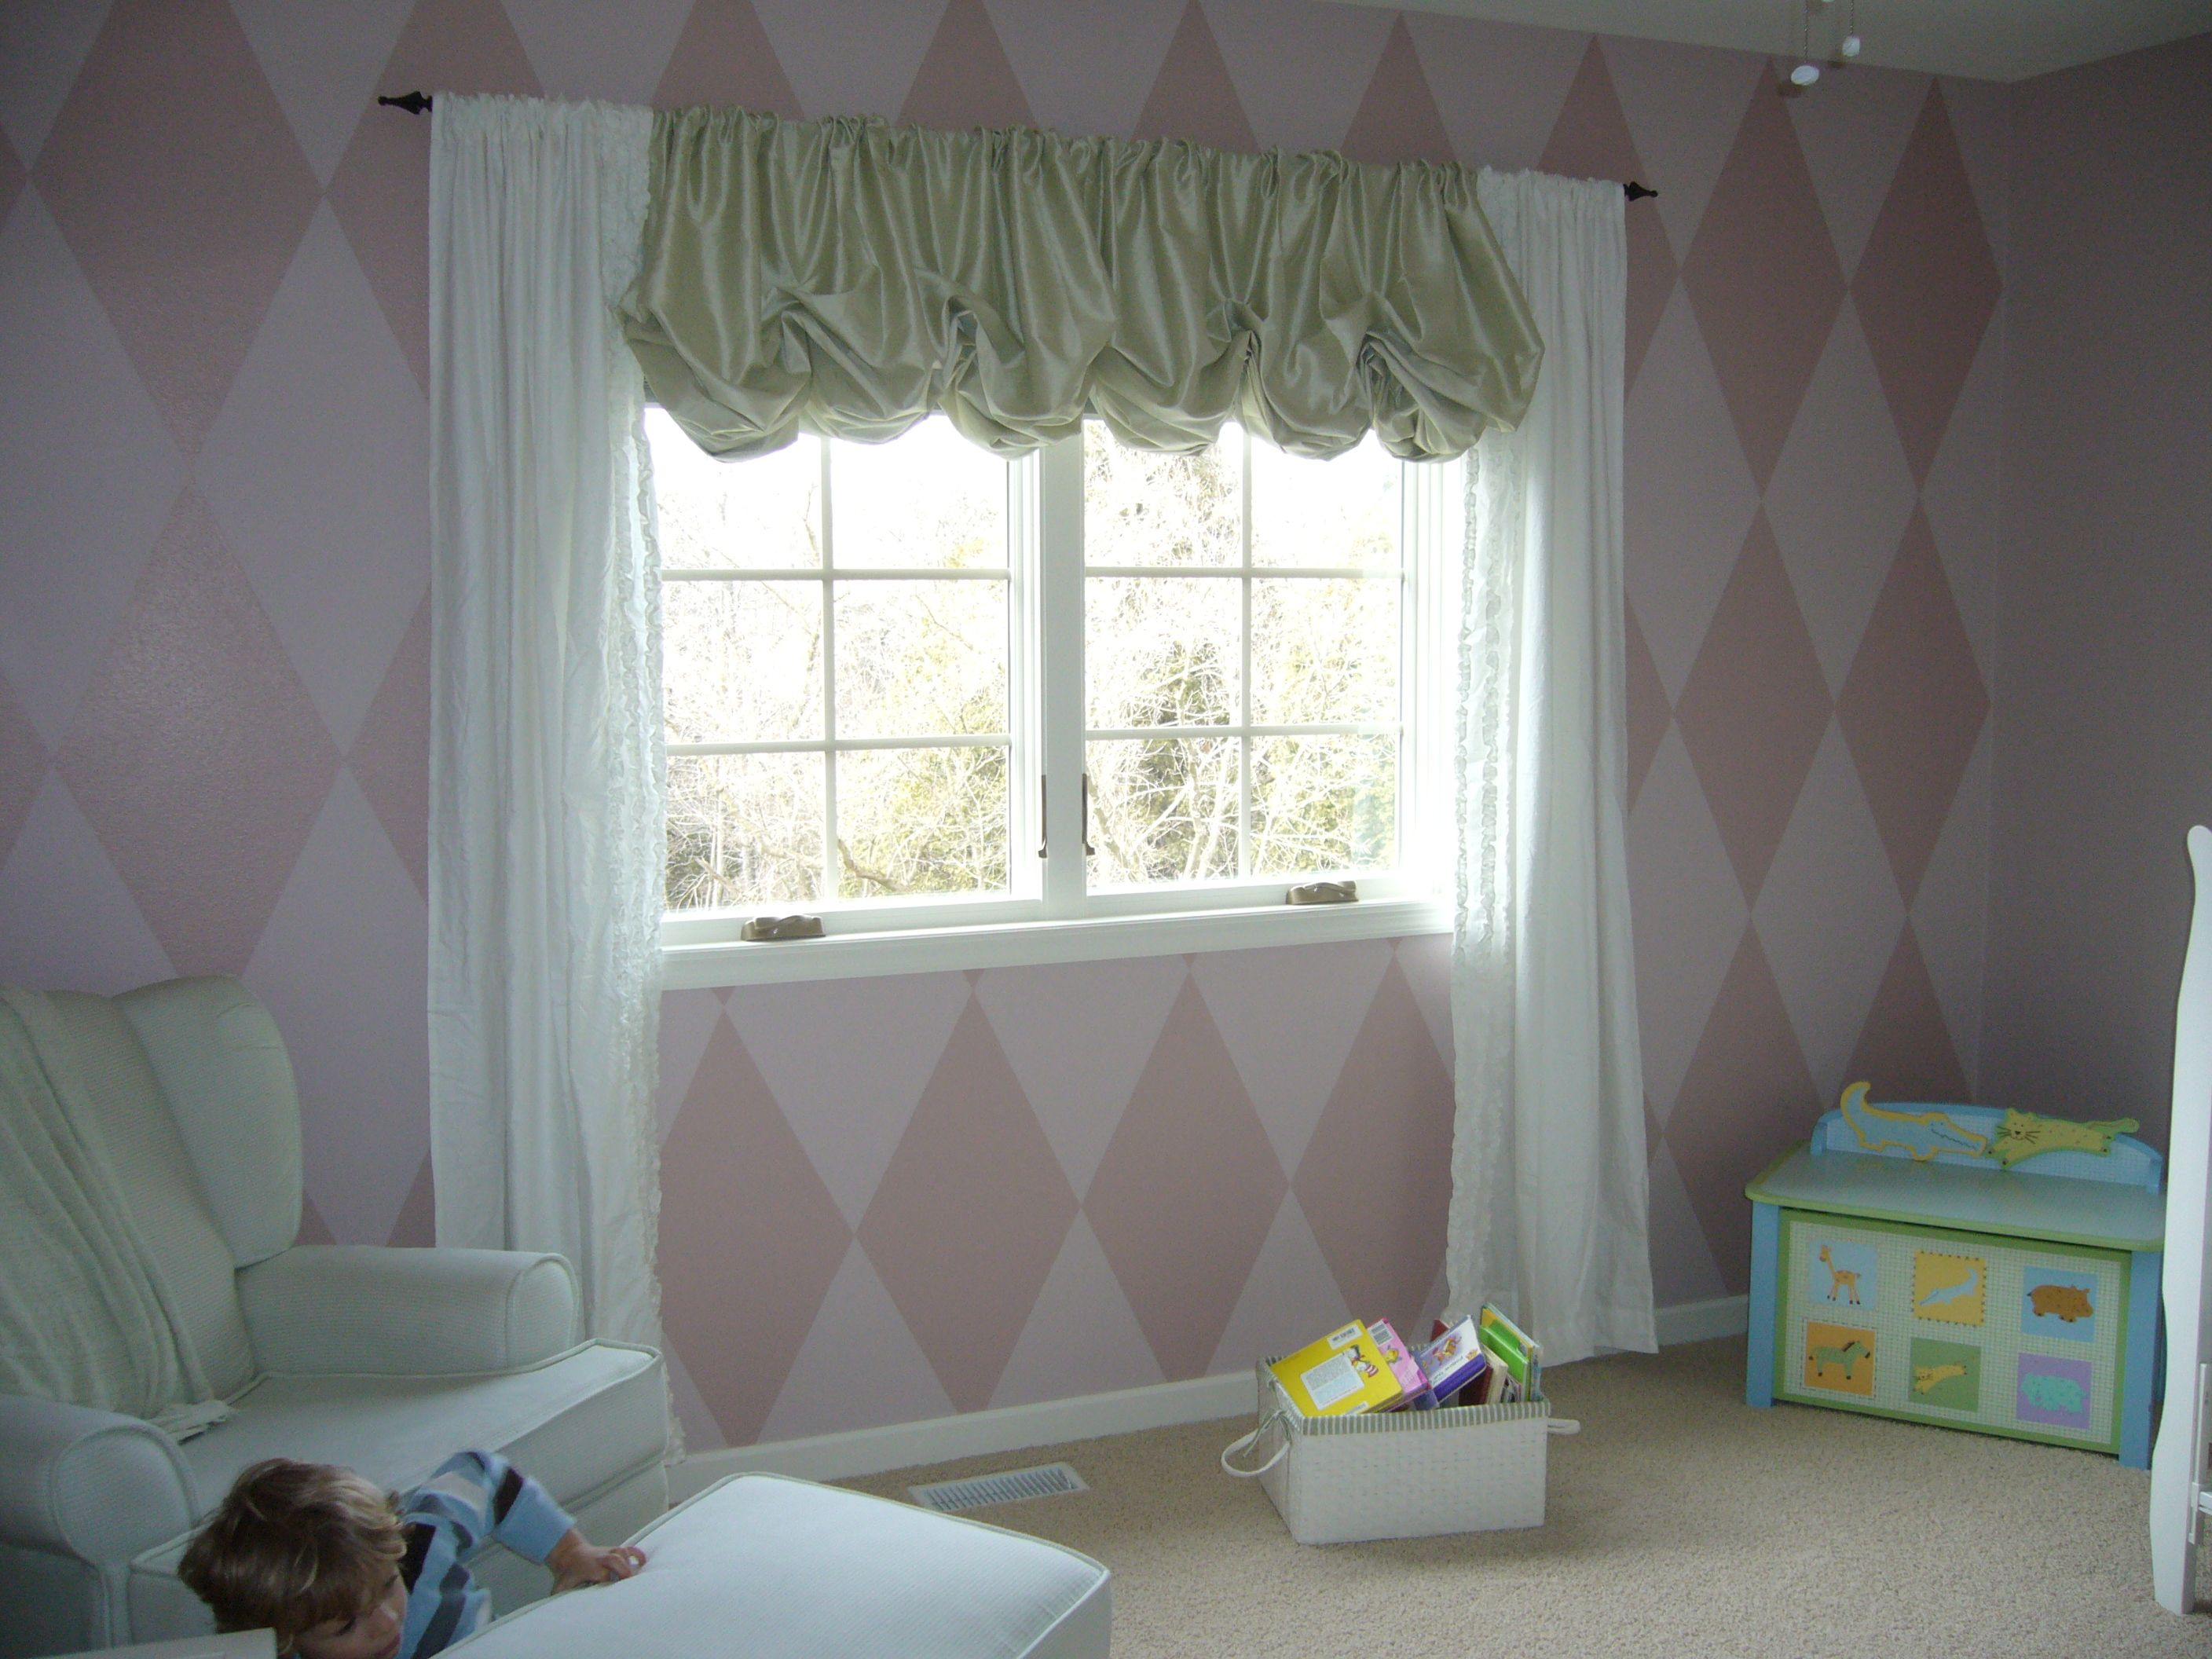 The diamonds add a playful touch in this nursery.